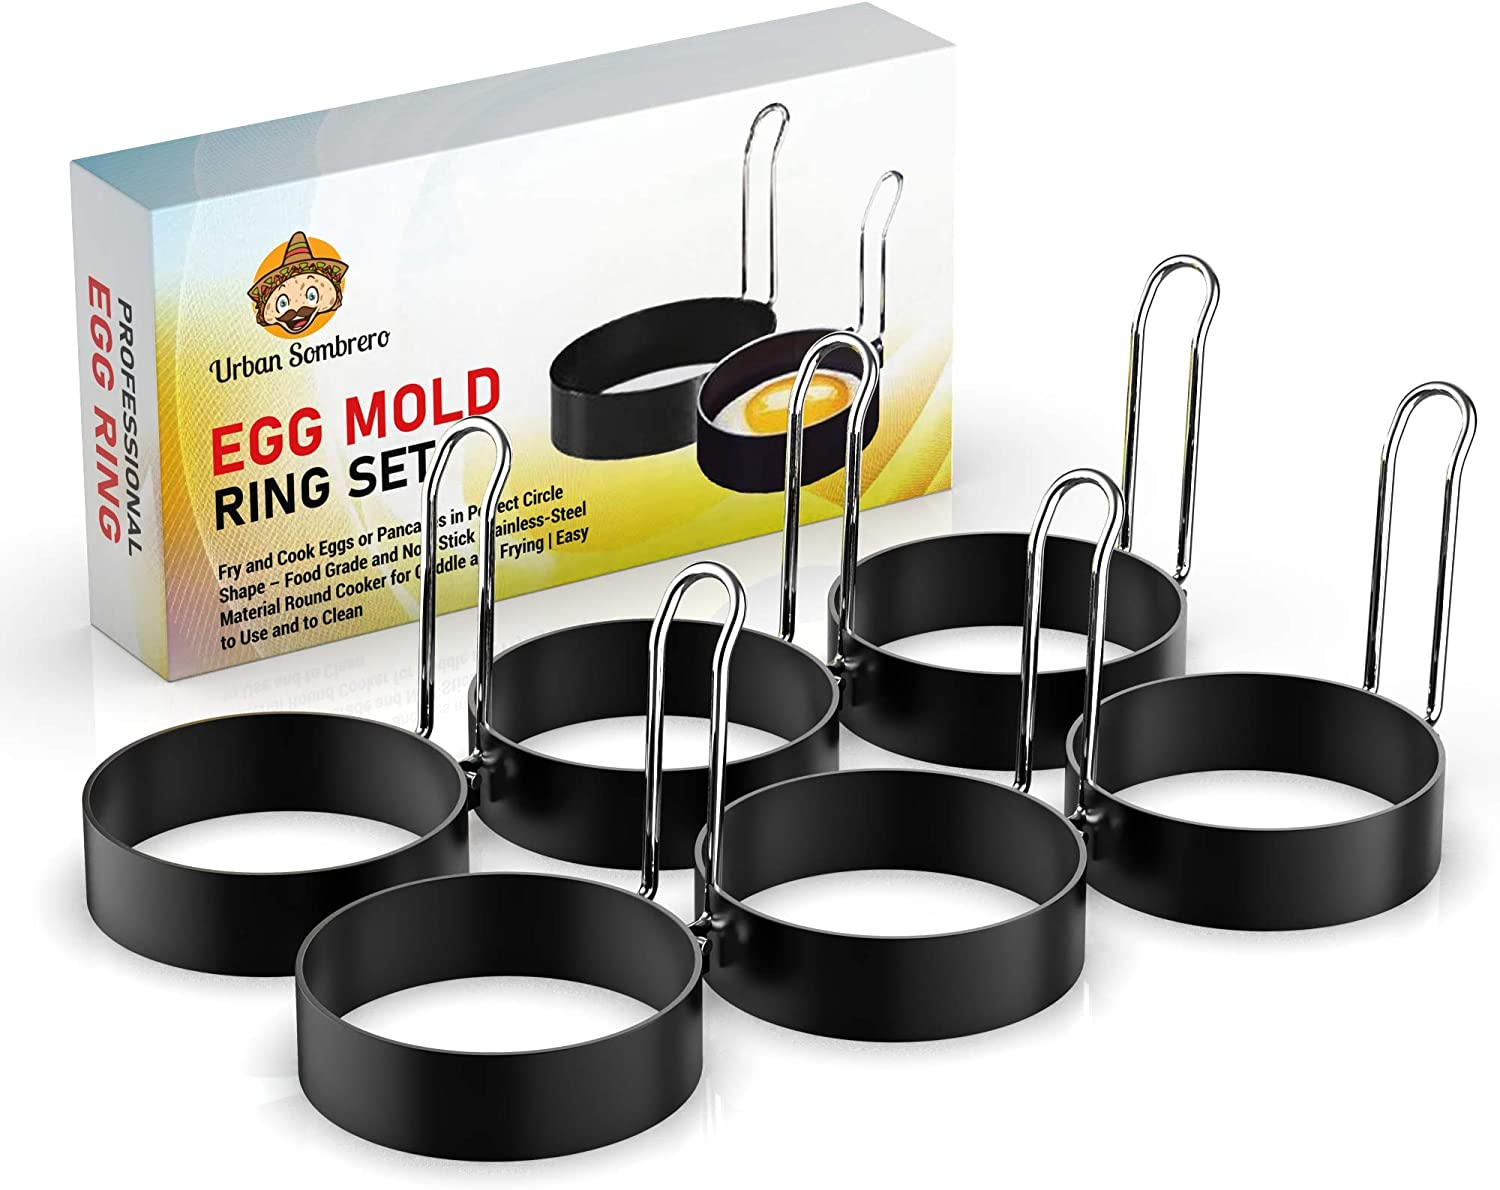 Direct sale of Limited price manufacturer Egg Mold Ring Set 6 Pack – Fry or Pancakes in and Pe Eggs Cook